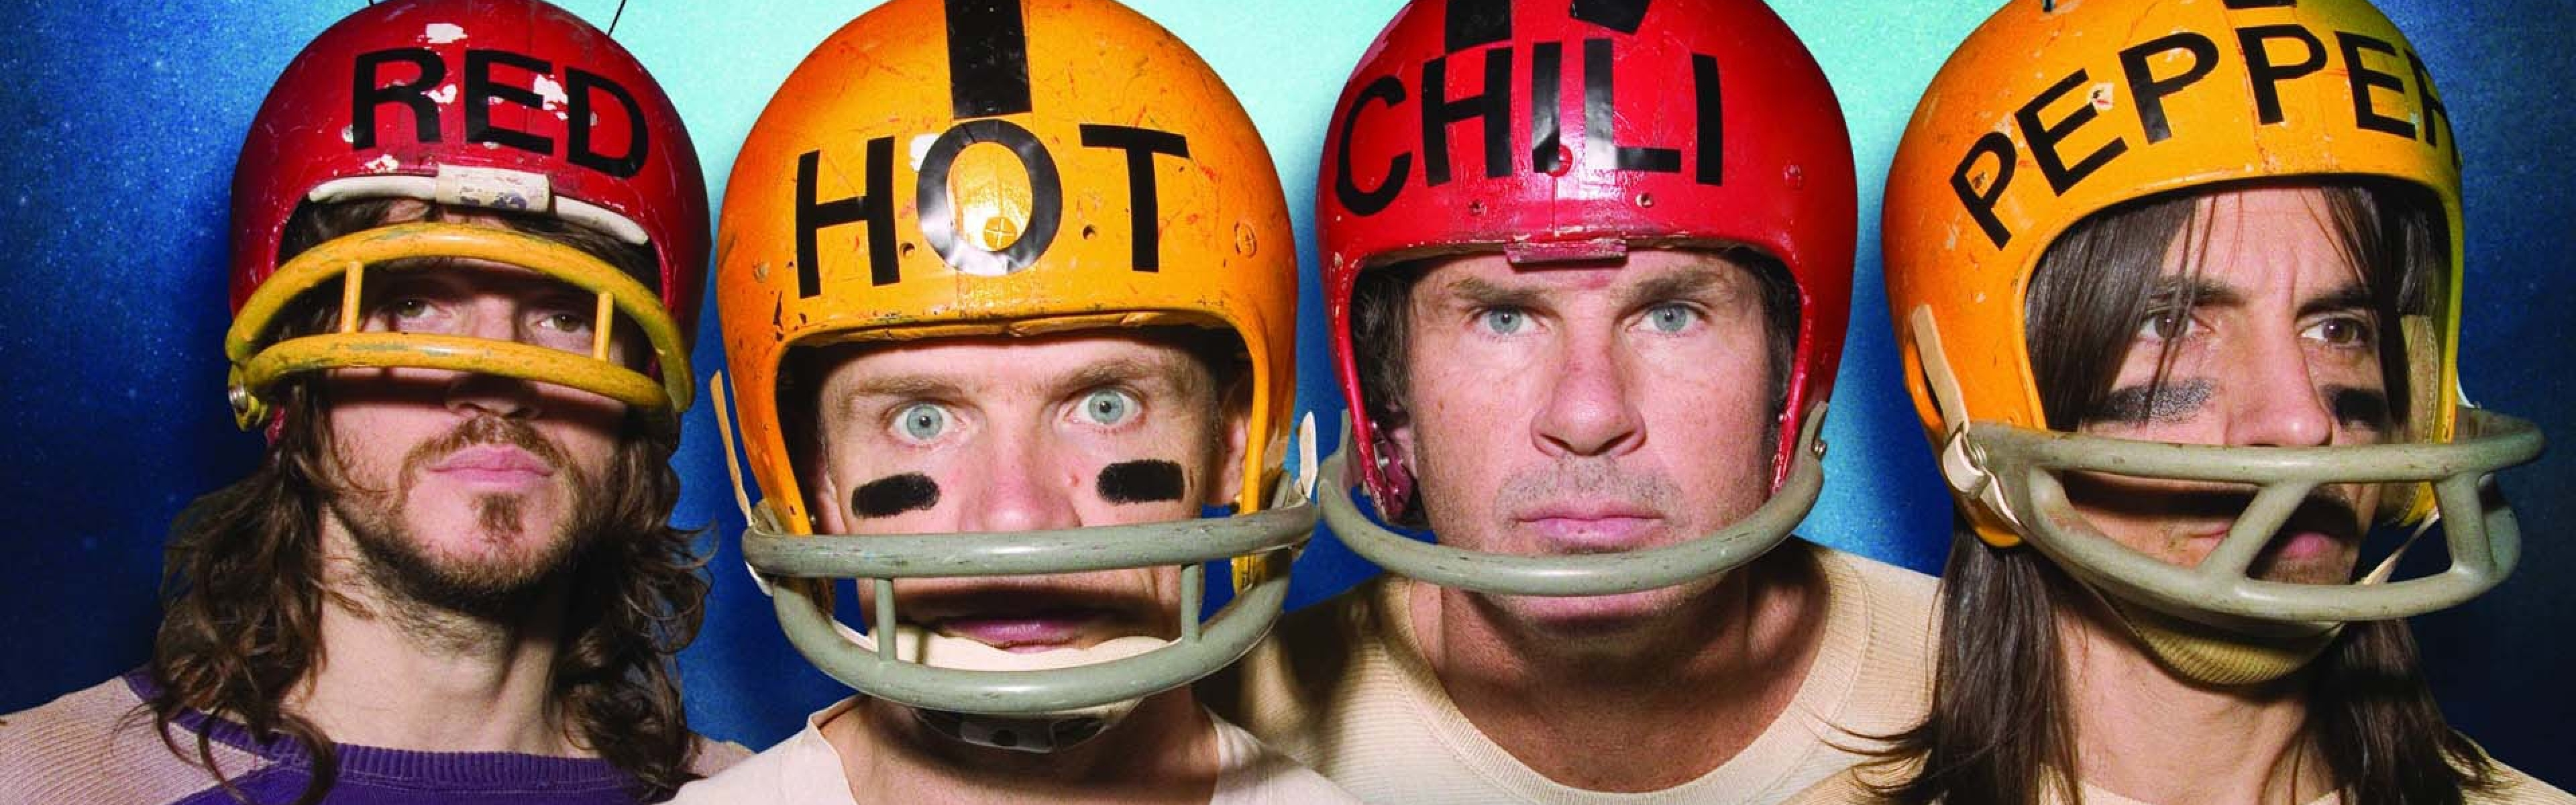 red_hot_chili_peppers_band_members_helmets_words_3763_3840x1200